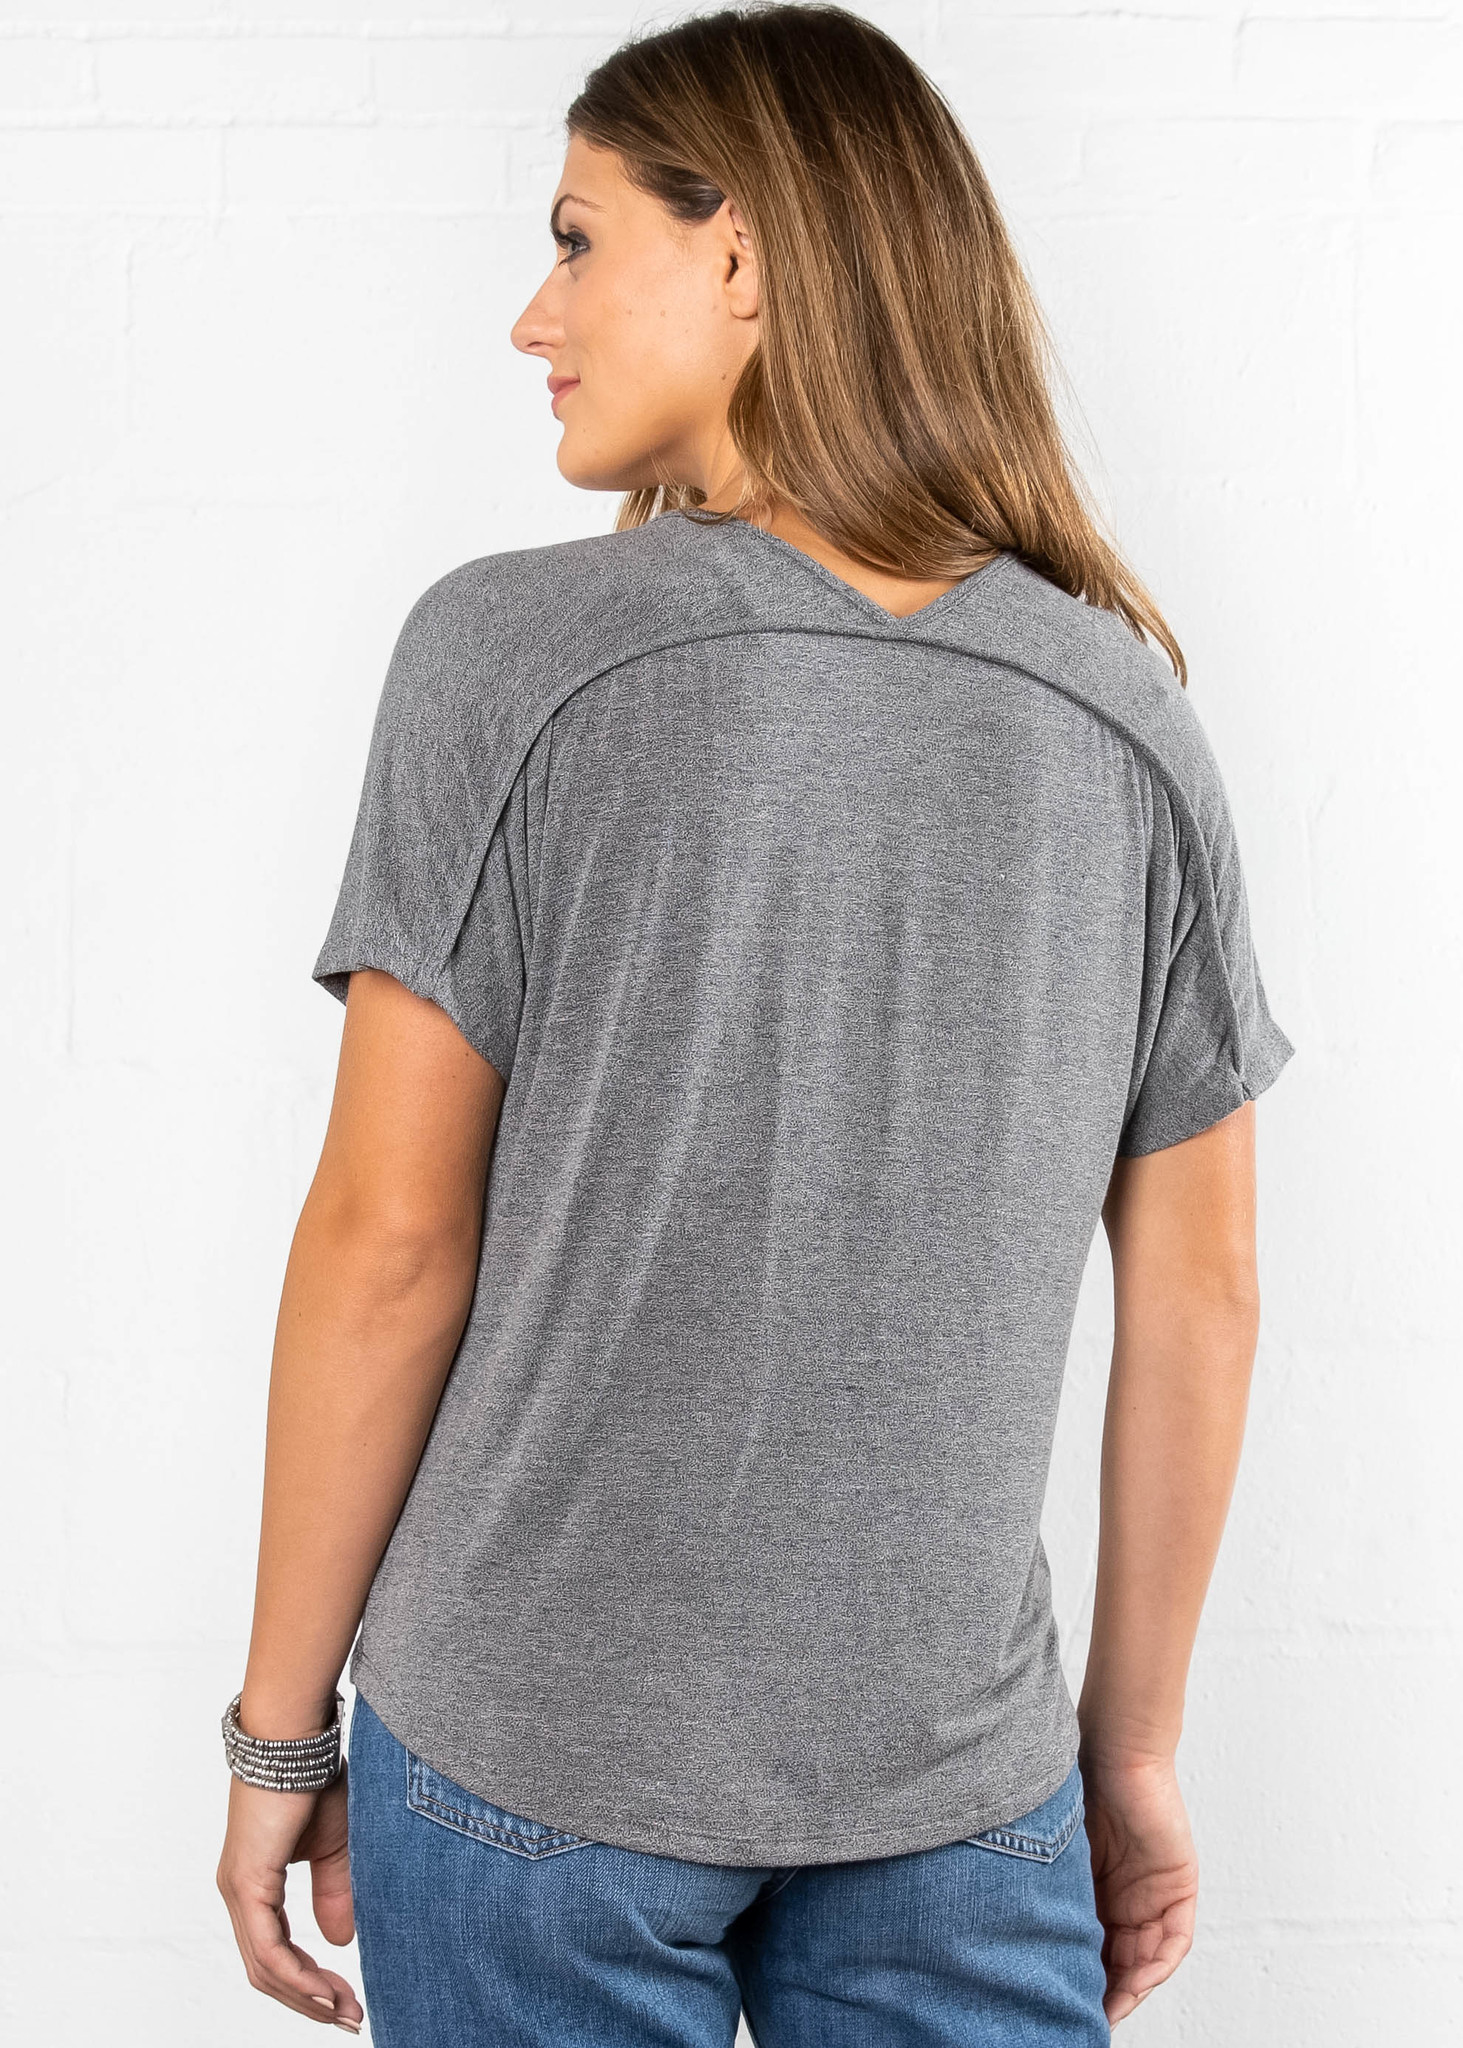 ATTENTION TO DETAIL TWIST TOP